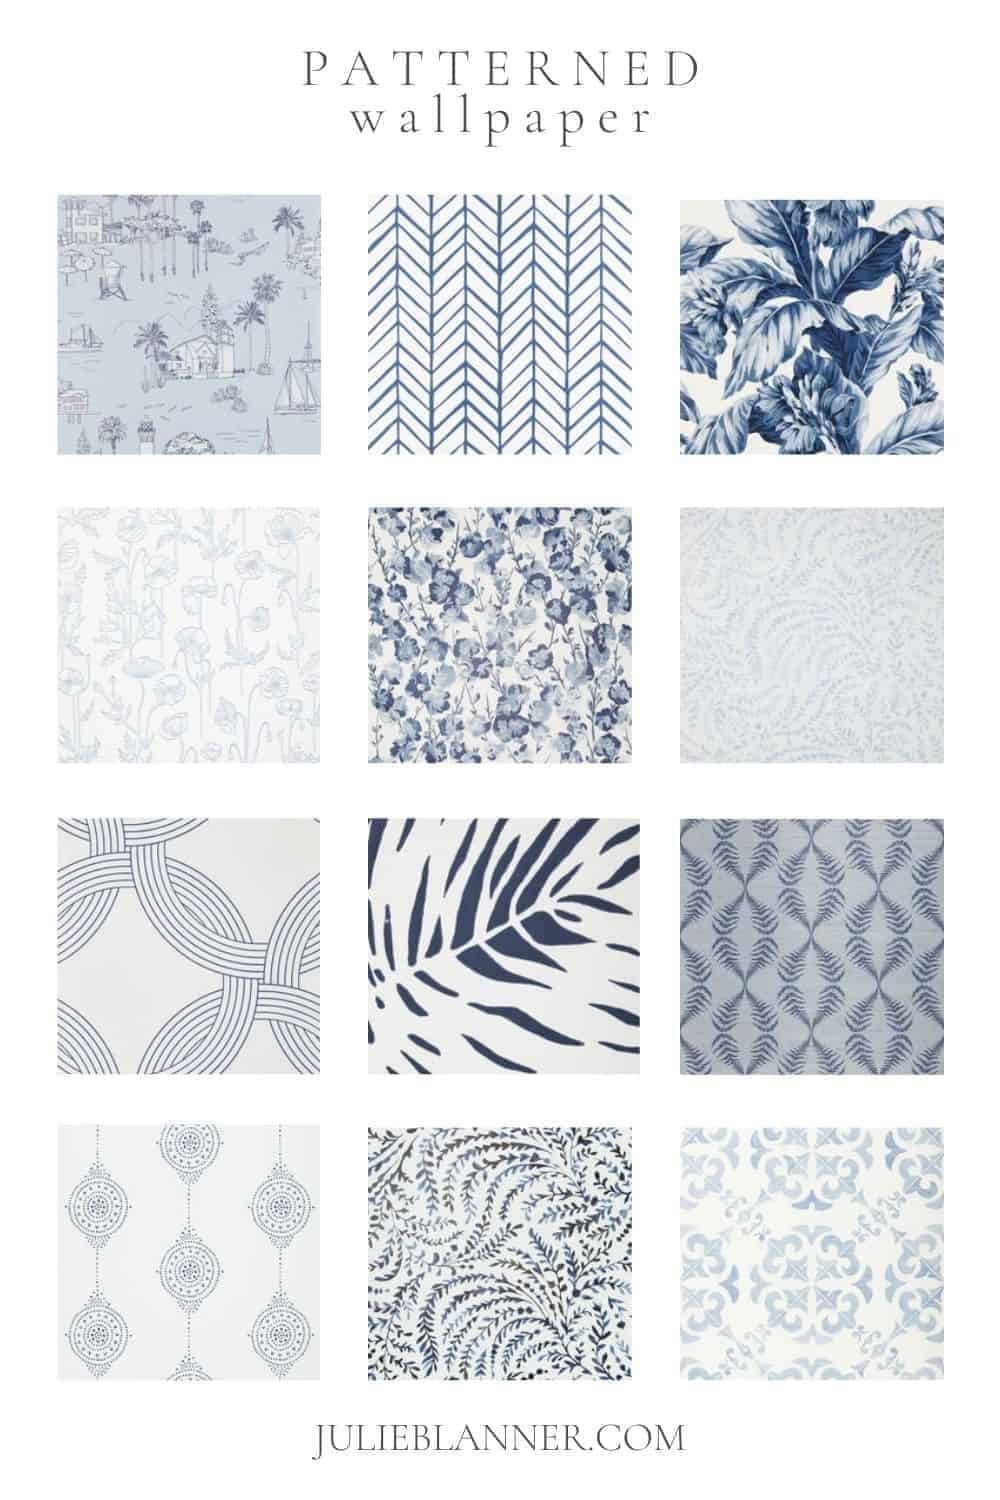 A collage of blue and white patterned Serena and Lily wallpapers, with text at the top that reads Patterned Wallpaper.